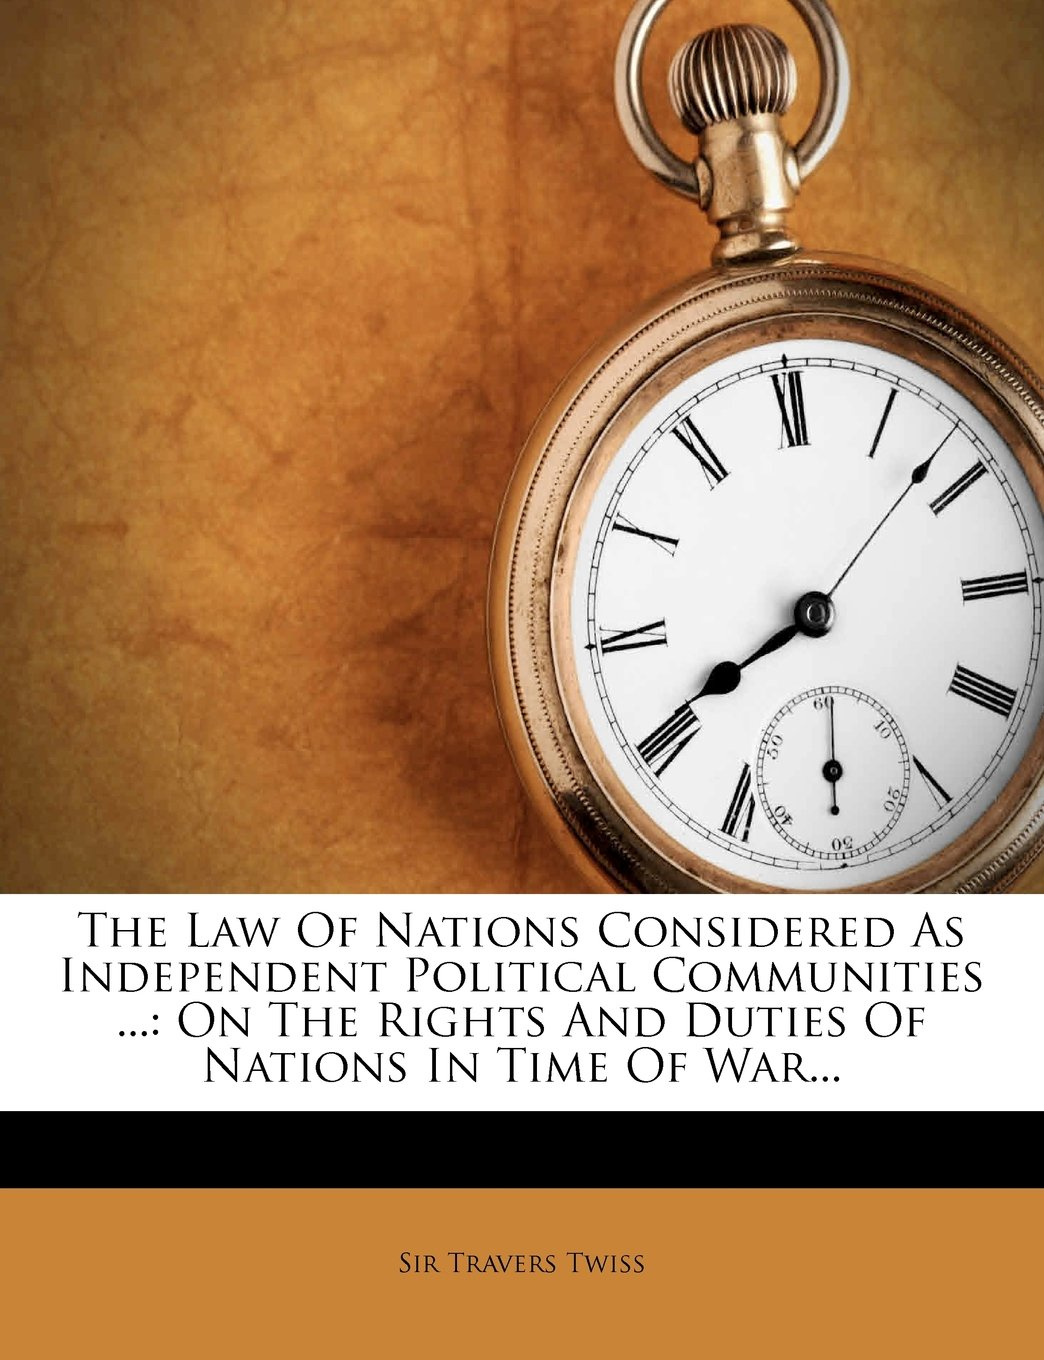 The Law of Nations Considered as Independent Political Communities ...: On the Rights and Duties of Nations in Time of War... ePub fb2 ebook